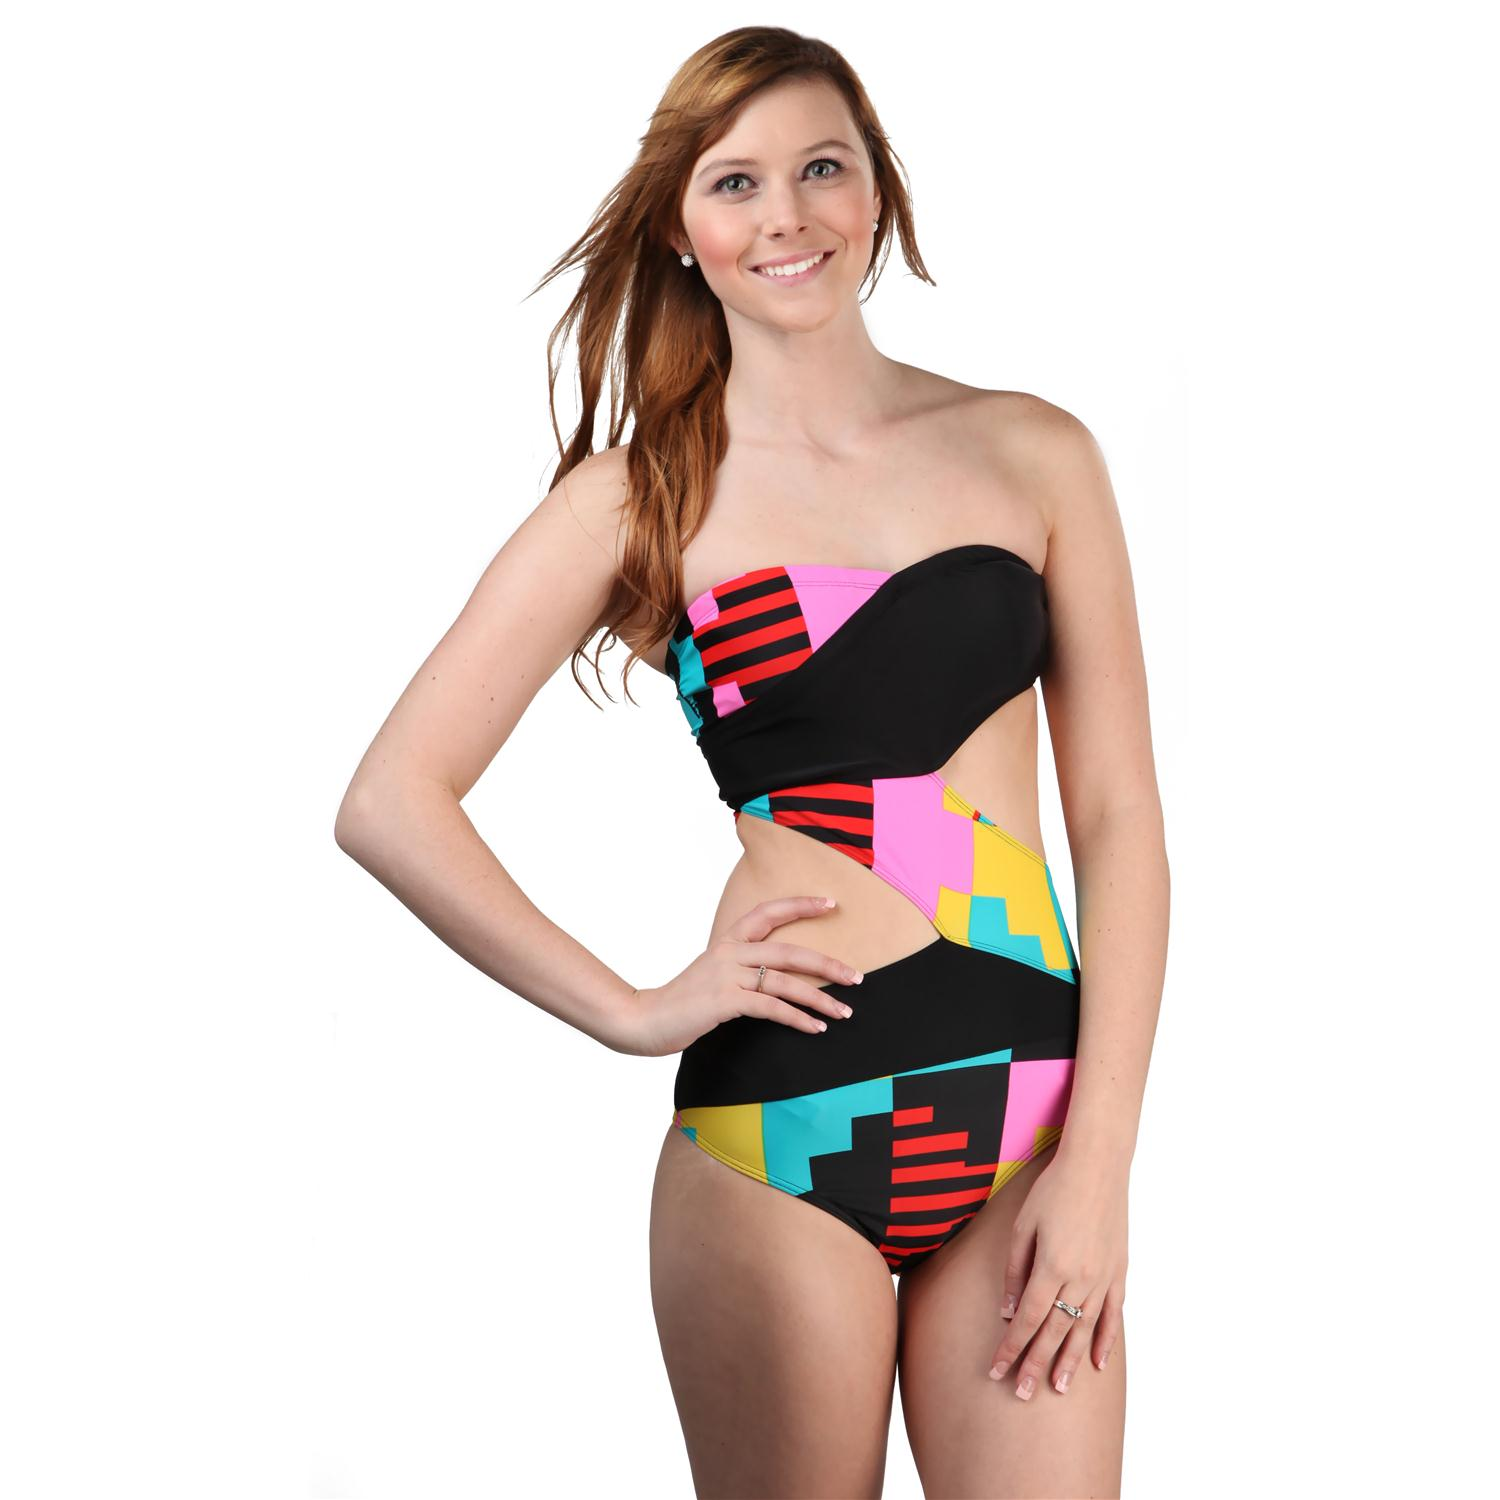 One-piece Swimwear: Free Shipping on orders over $45 at neo-craft.gq - Your Online One-piece Swimwear Store! Overstock uses cookies to ensure you get the best experience on our site. If you continue on our site, you consent to the use of such cookies. InstantFigure Women's One-Piece Two-Tone Swimsuit. 40 Reviews. SALE. Quick View.